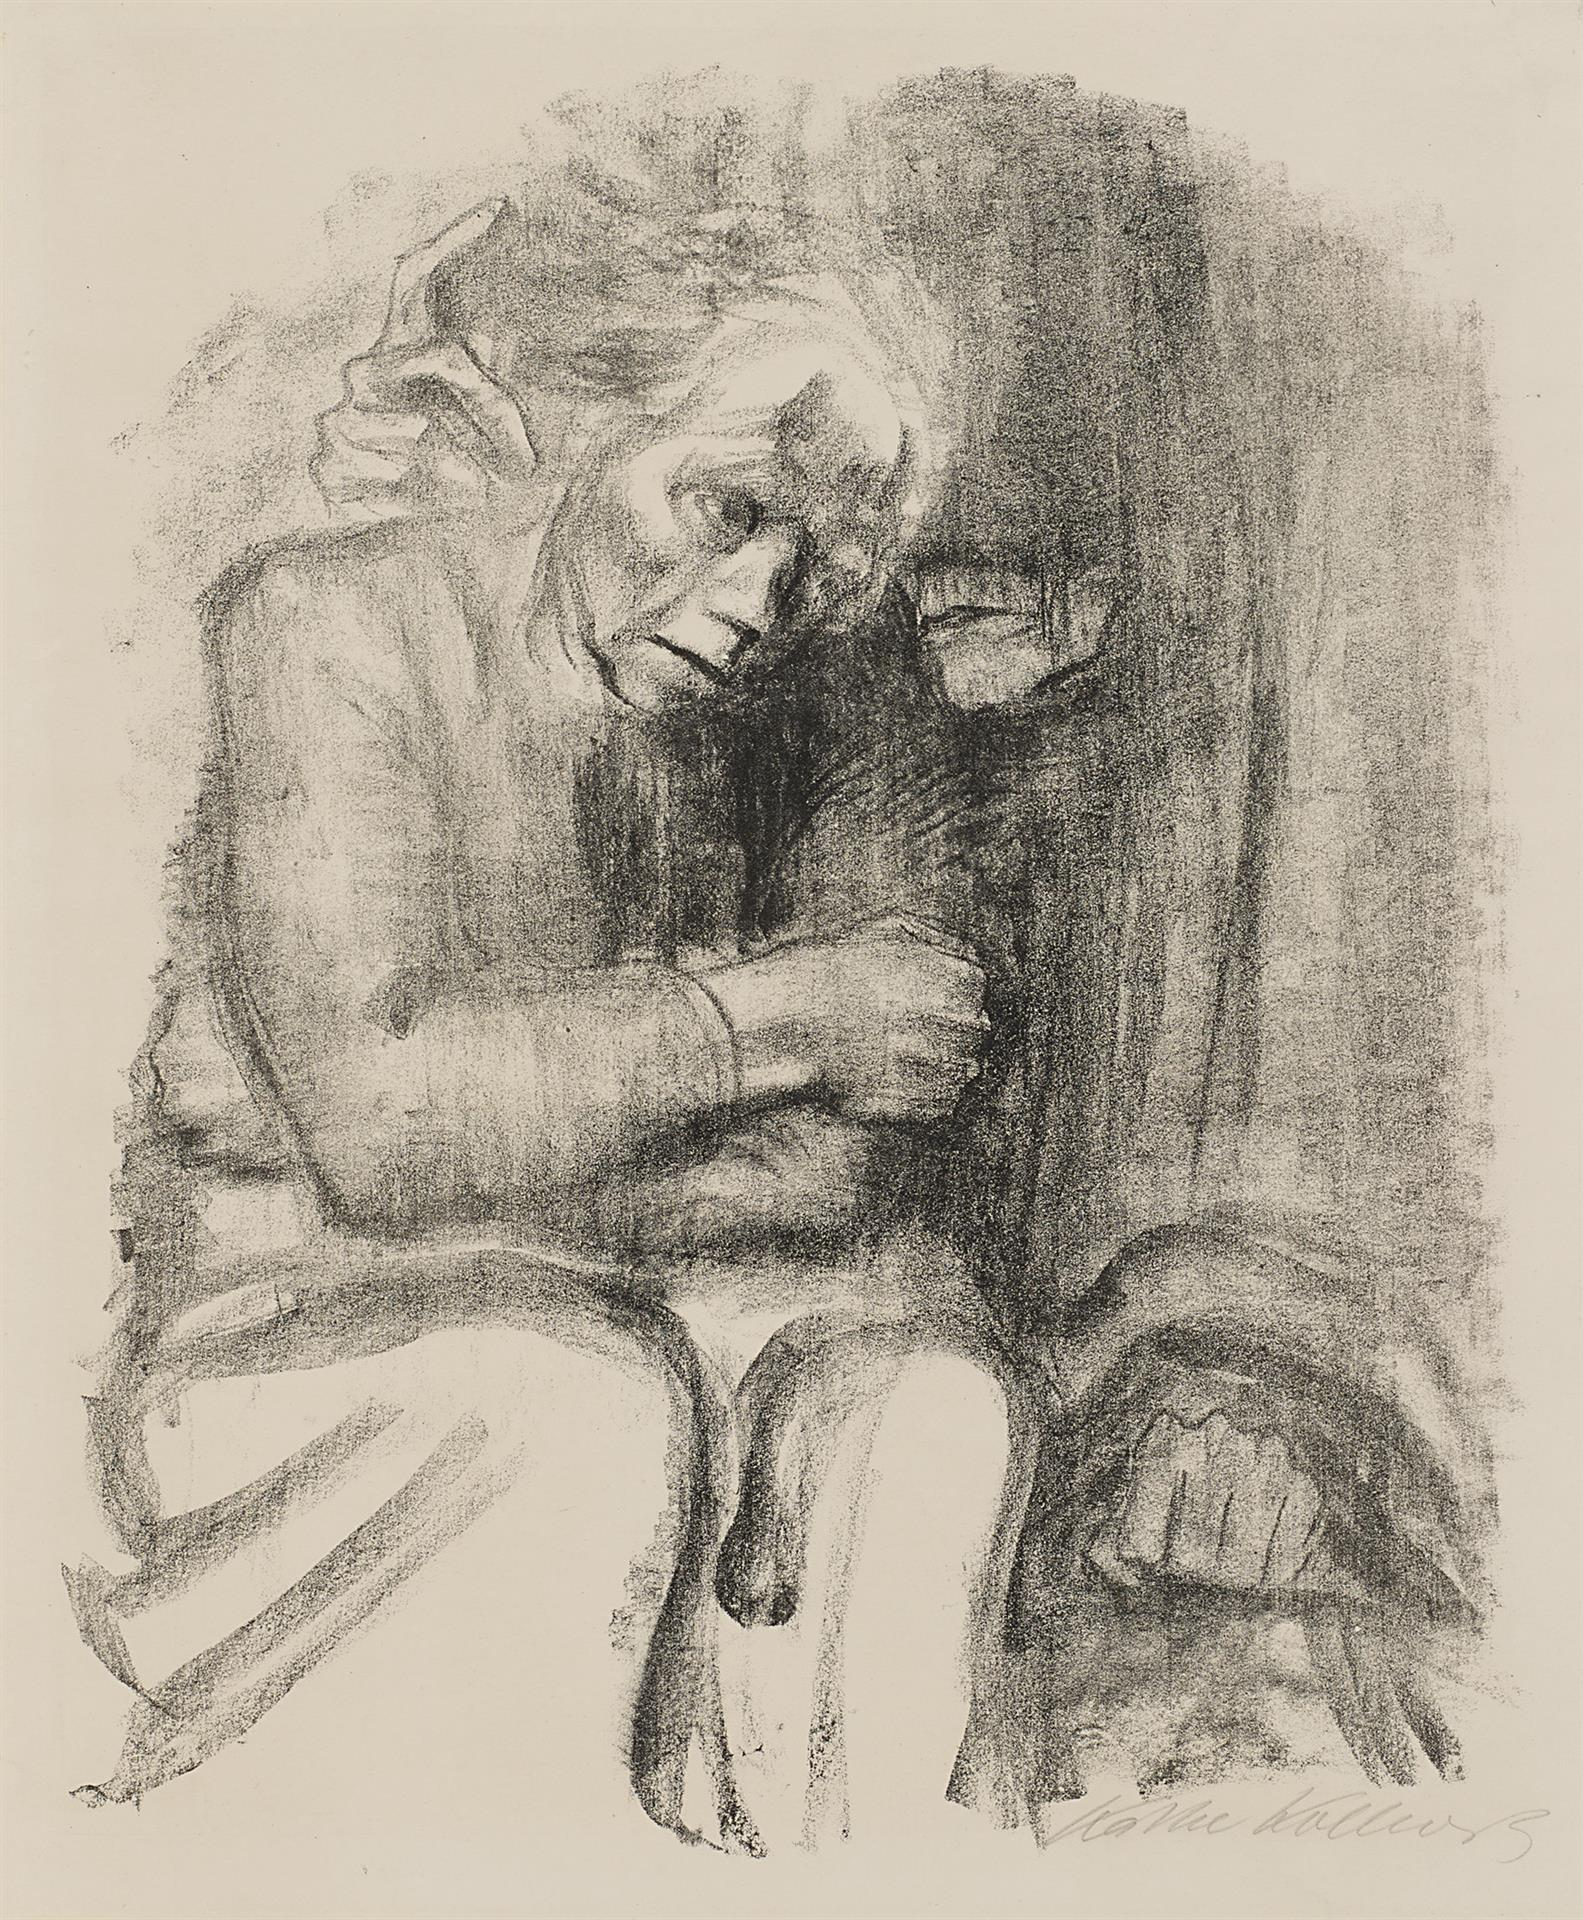 Käthe Kollwitz, Departure and Death, 1923, crayon lithograph (transfer), Kn 200, Cologne Kollwitz Collection © Käthe Kollwitz Museum Köln